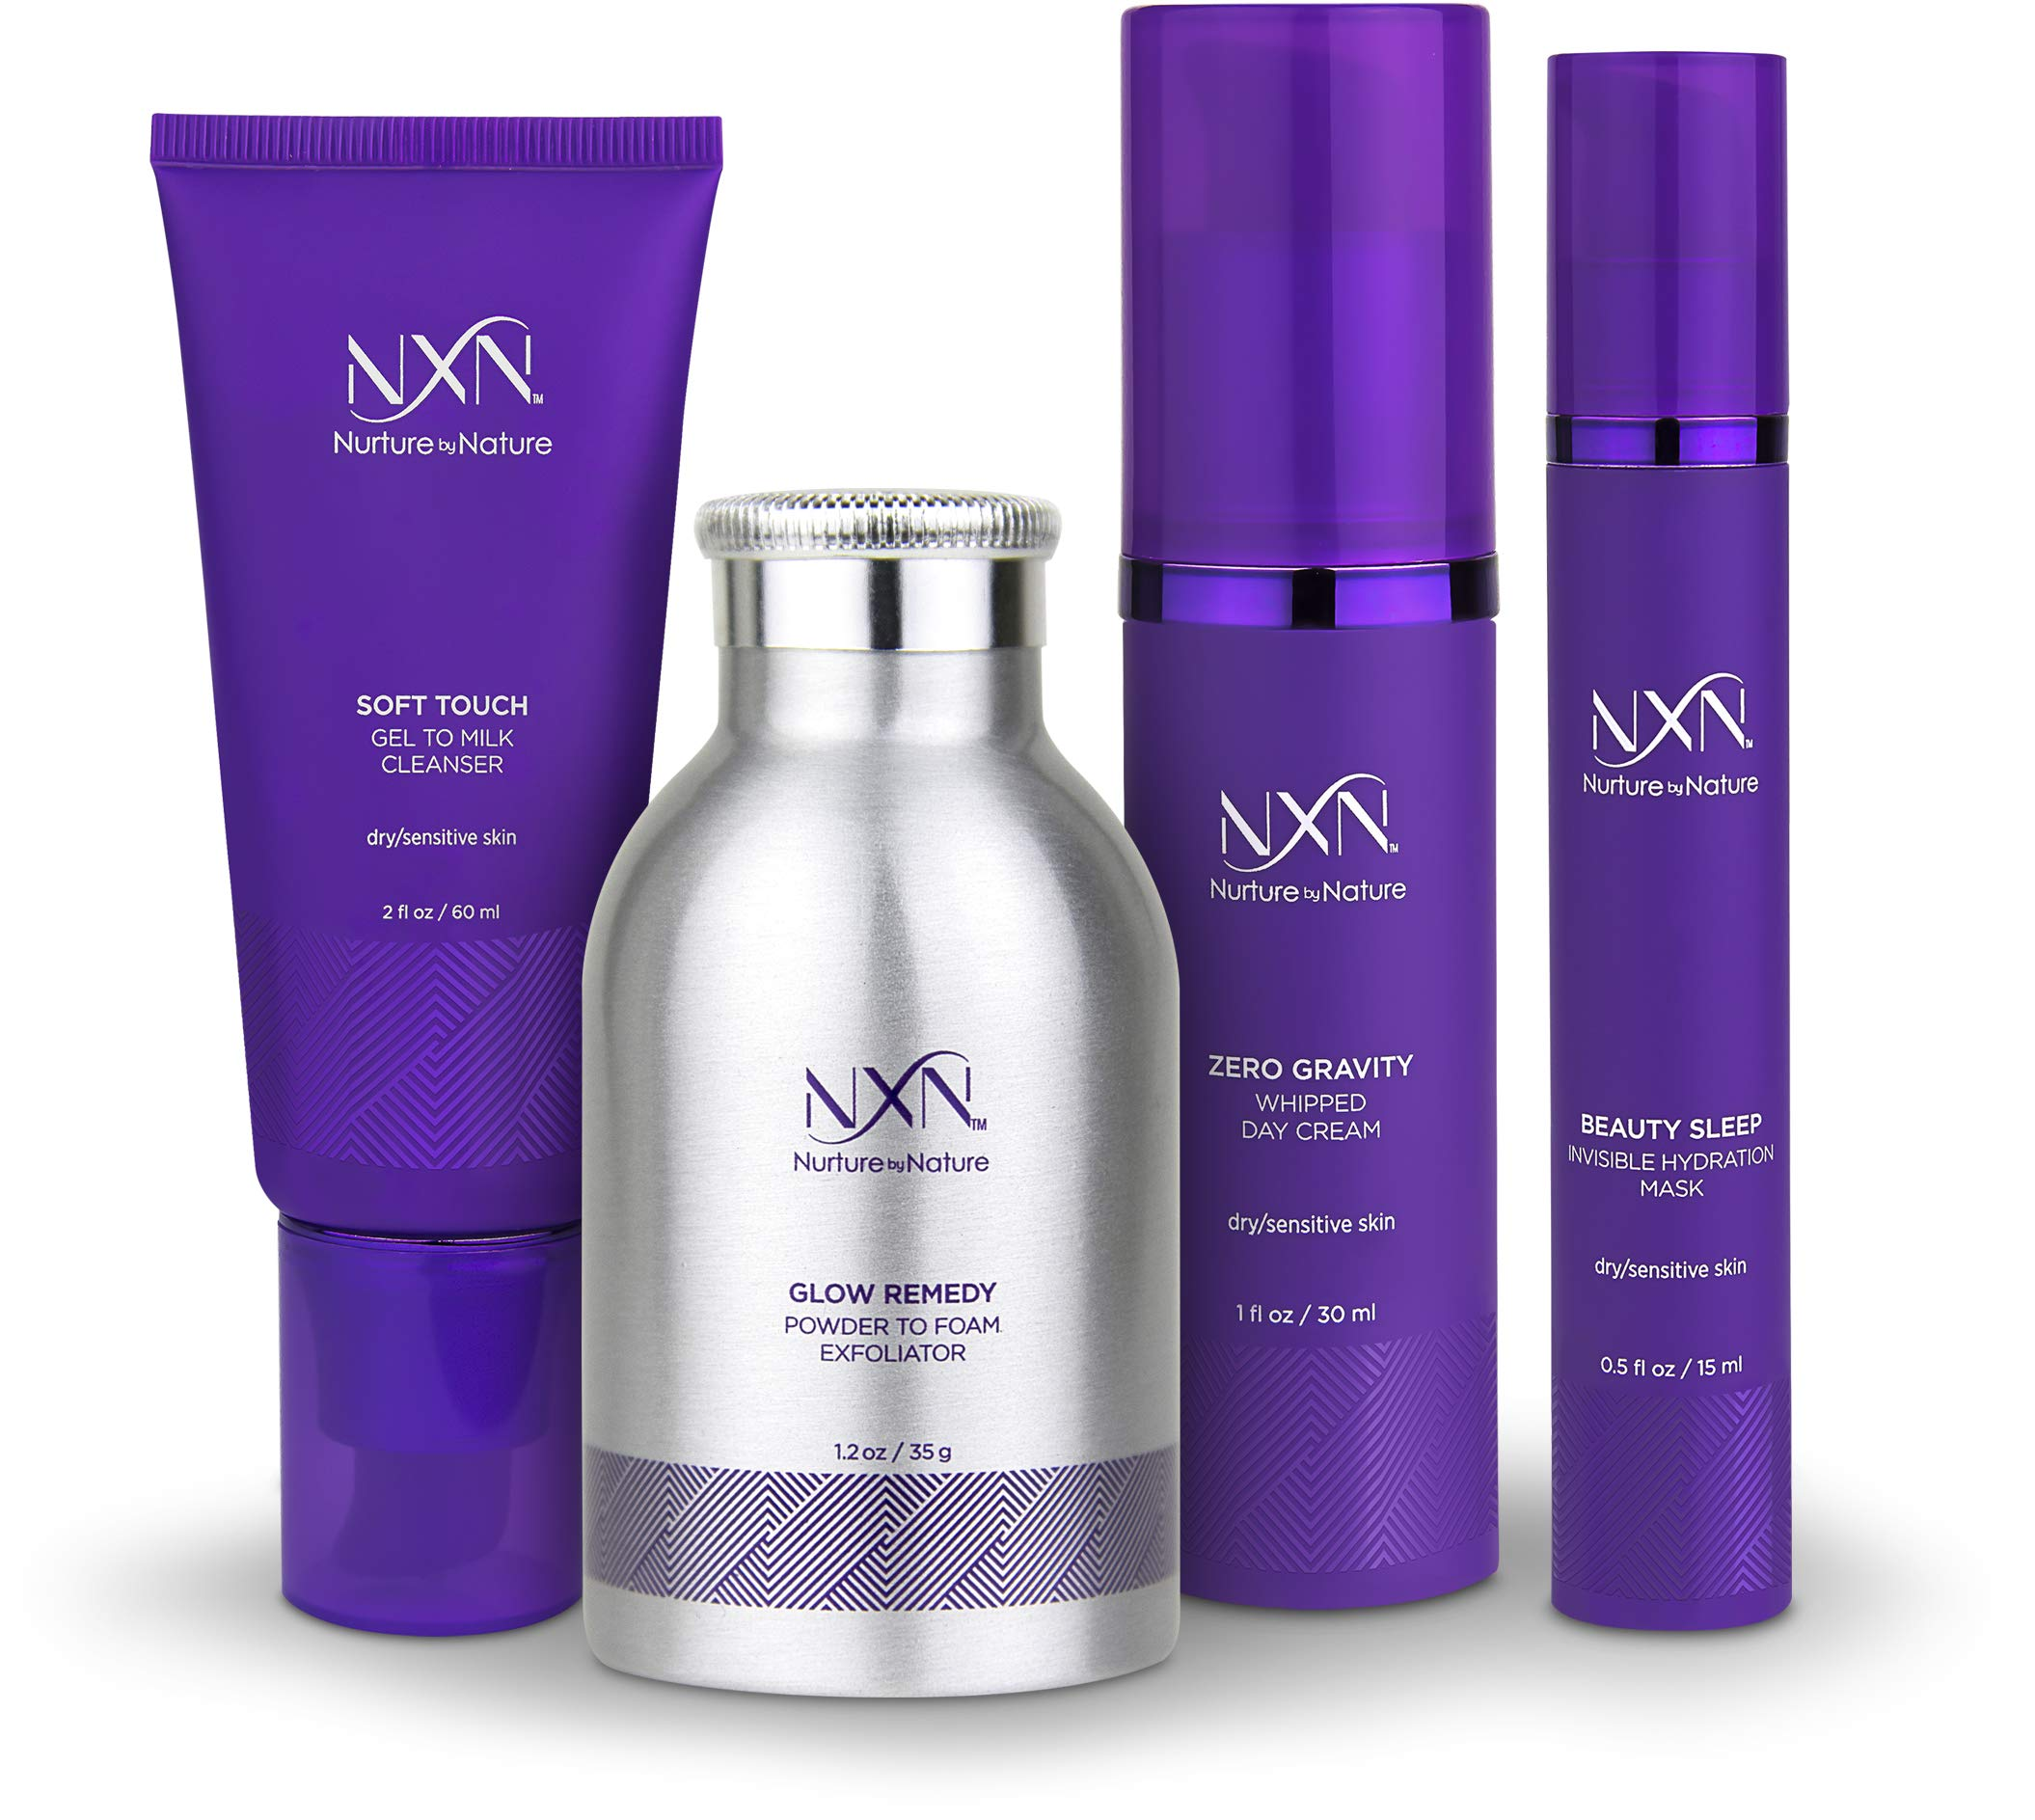 NxN Total Moisture 4-Step Anti-Aging & Dry Skin Treatment System, With Coconut, Coffee, Green Tea, Licorice Root, Sea Buckthorn Oil, Squalane, Blueberry & Grape Seed Extract by NXN